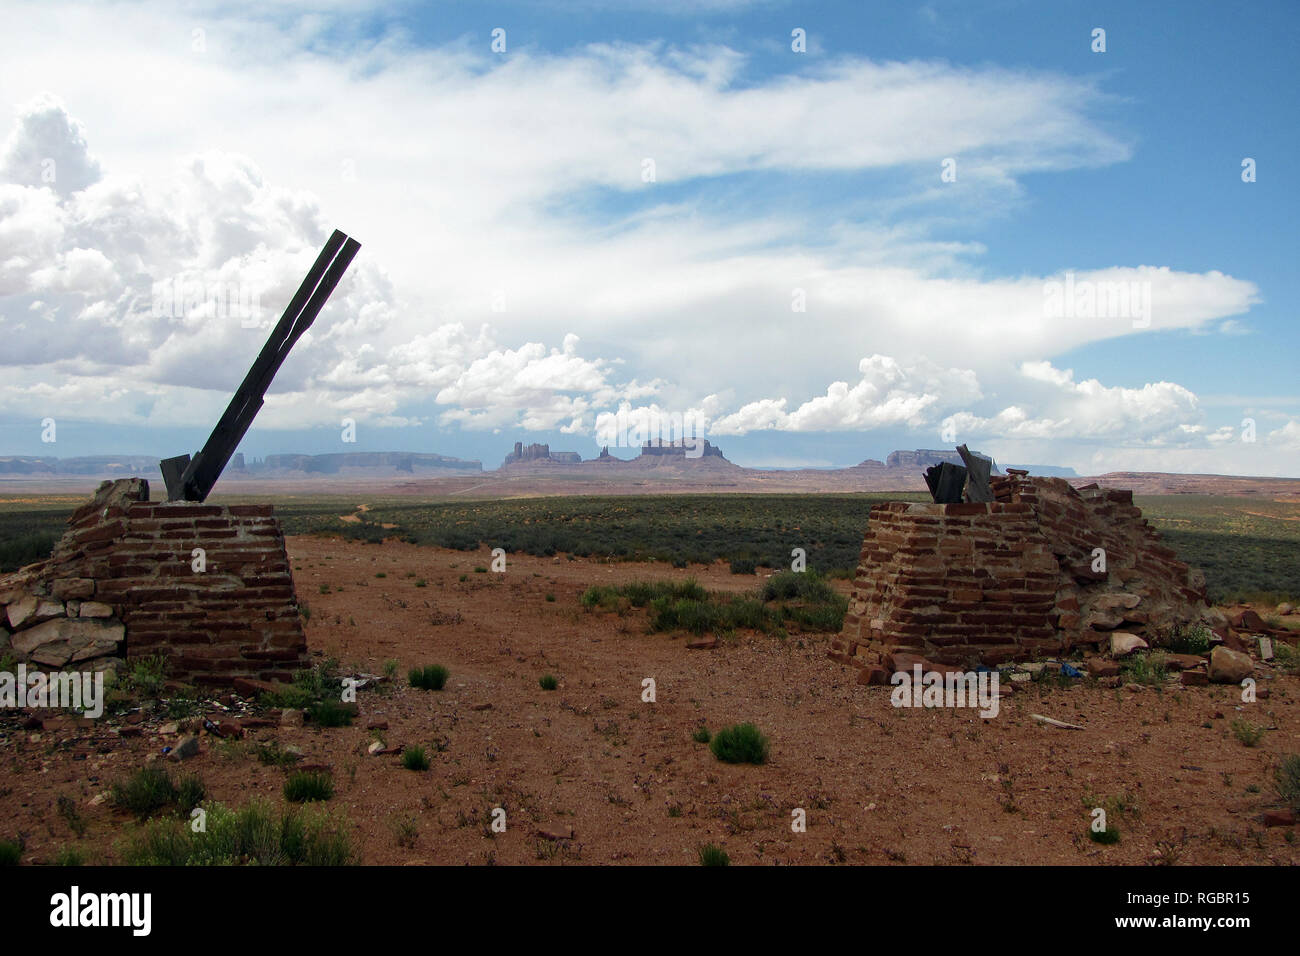 Filming location of movie Once Upon a Time in the West, directed by Sergio Leone. Remains of brick arch of the hanging scene. Monument Valley on back. - Stock Image